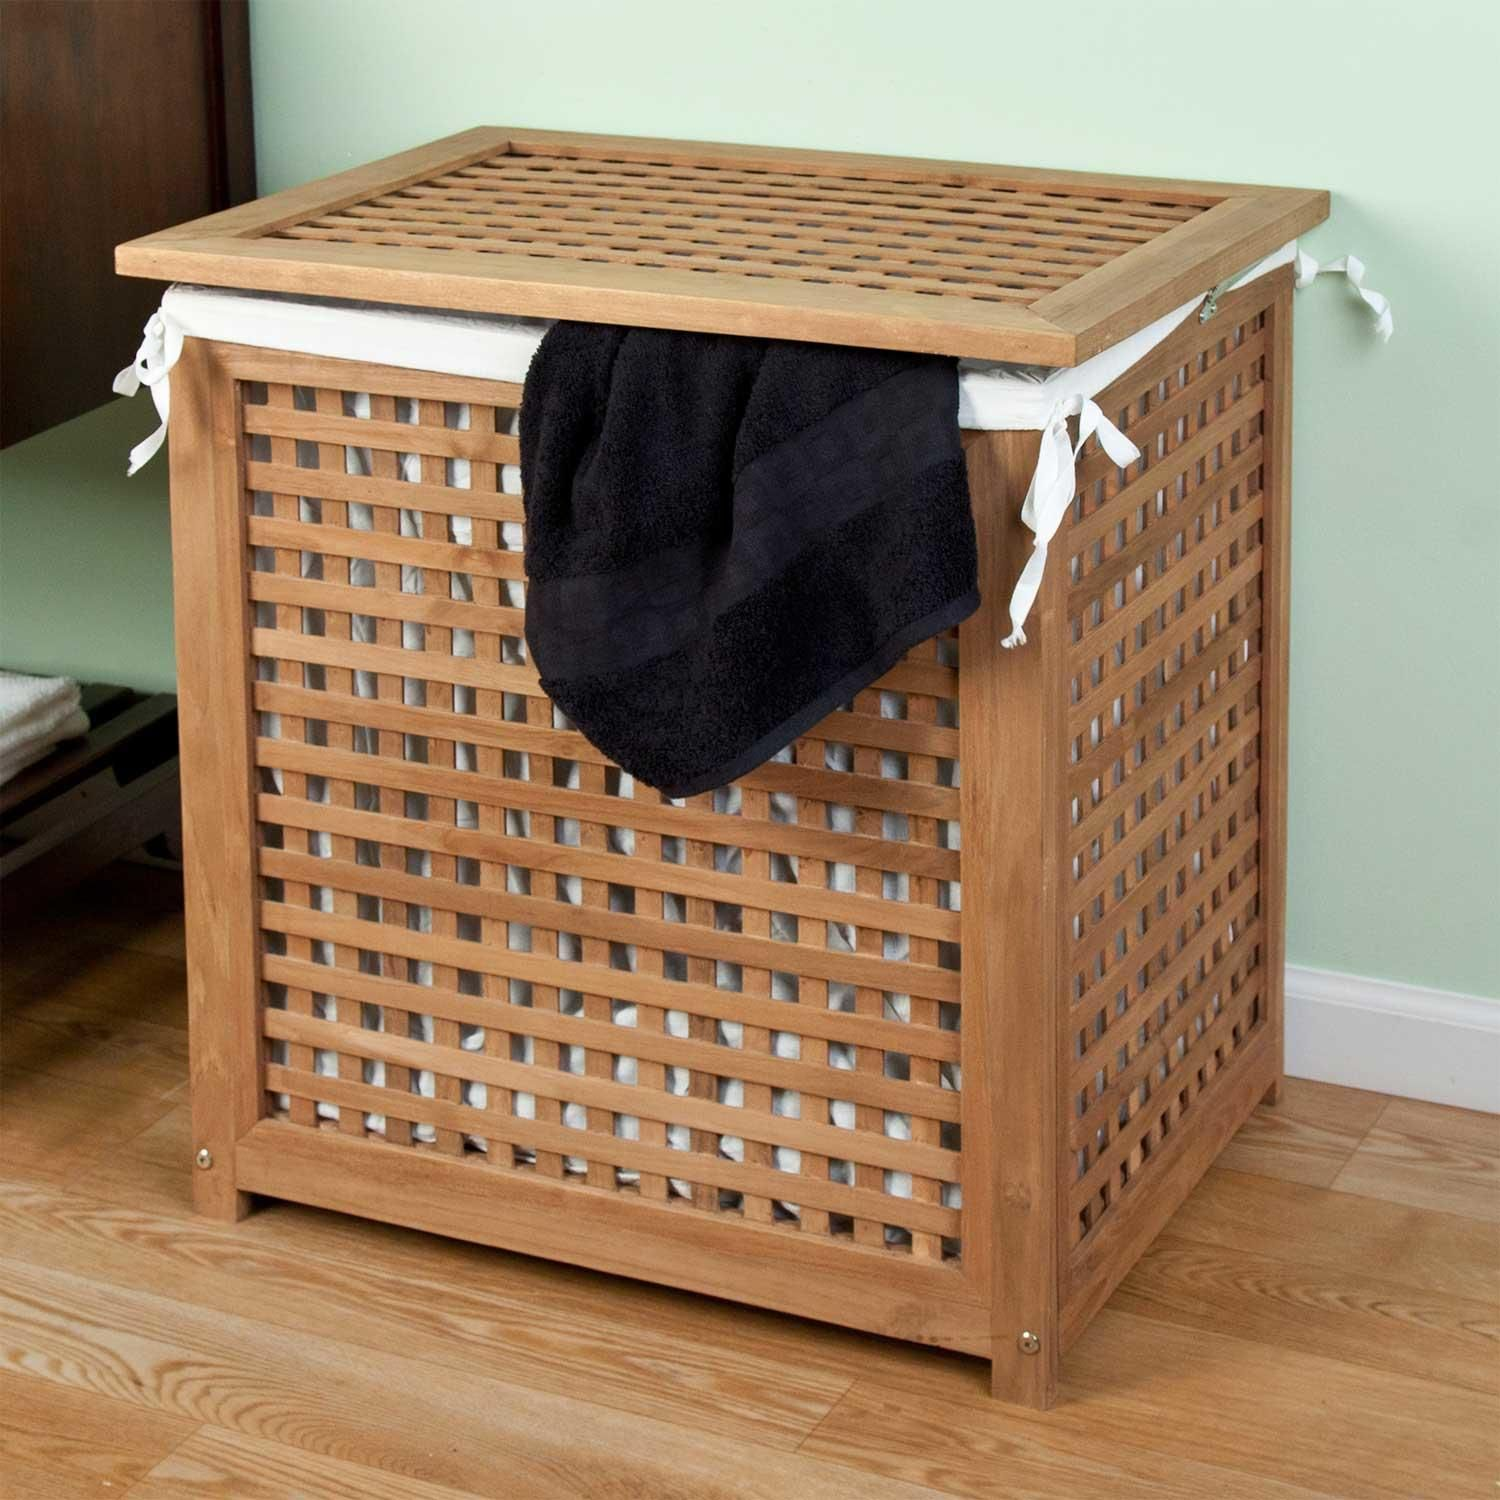 Teak Laundry Hamper With Lid Laundry Hamper Wood Laundry Hamper